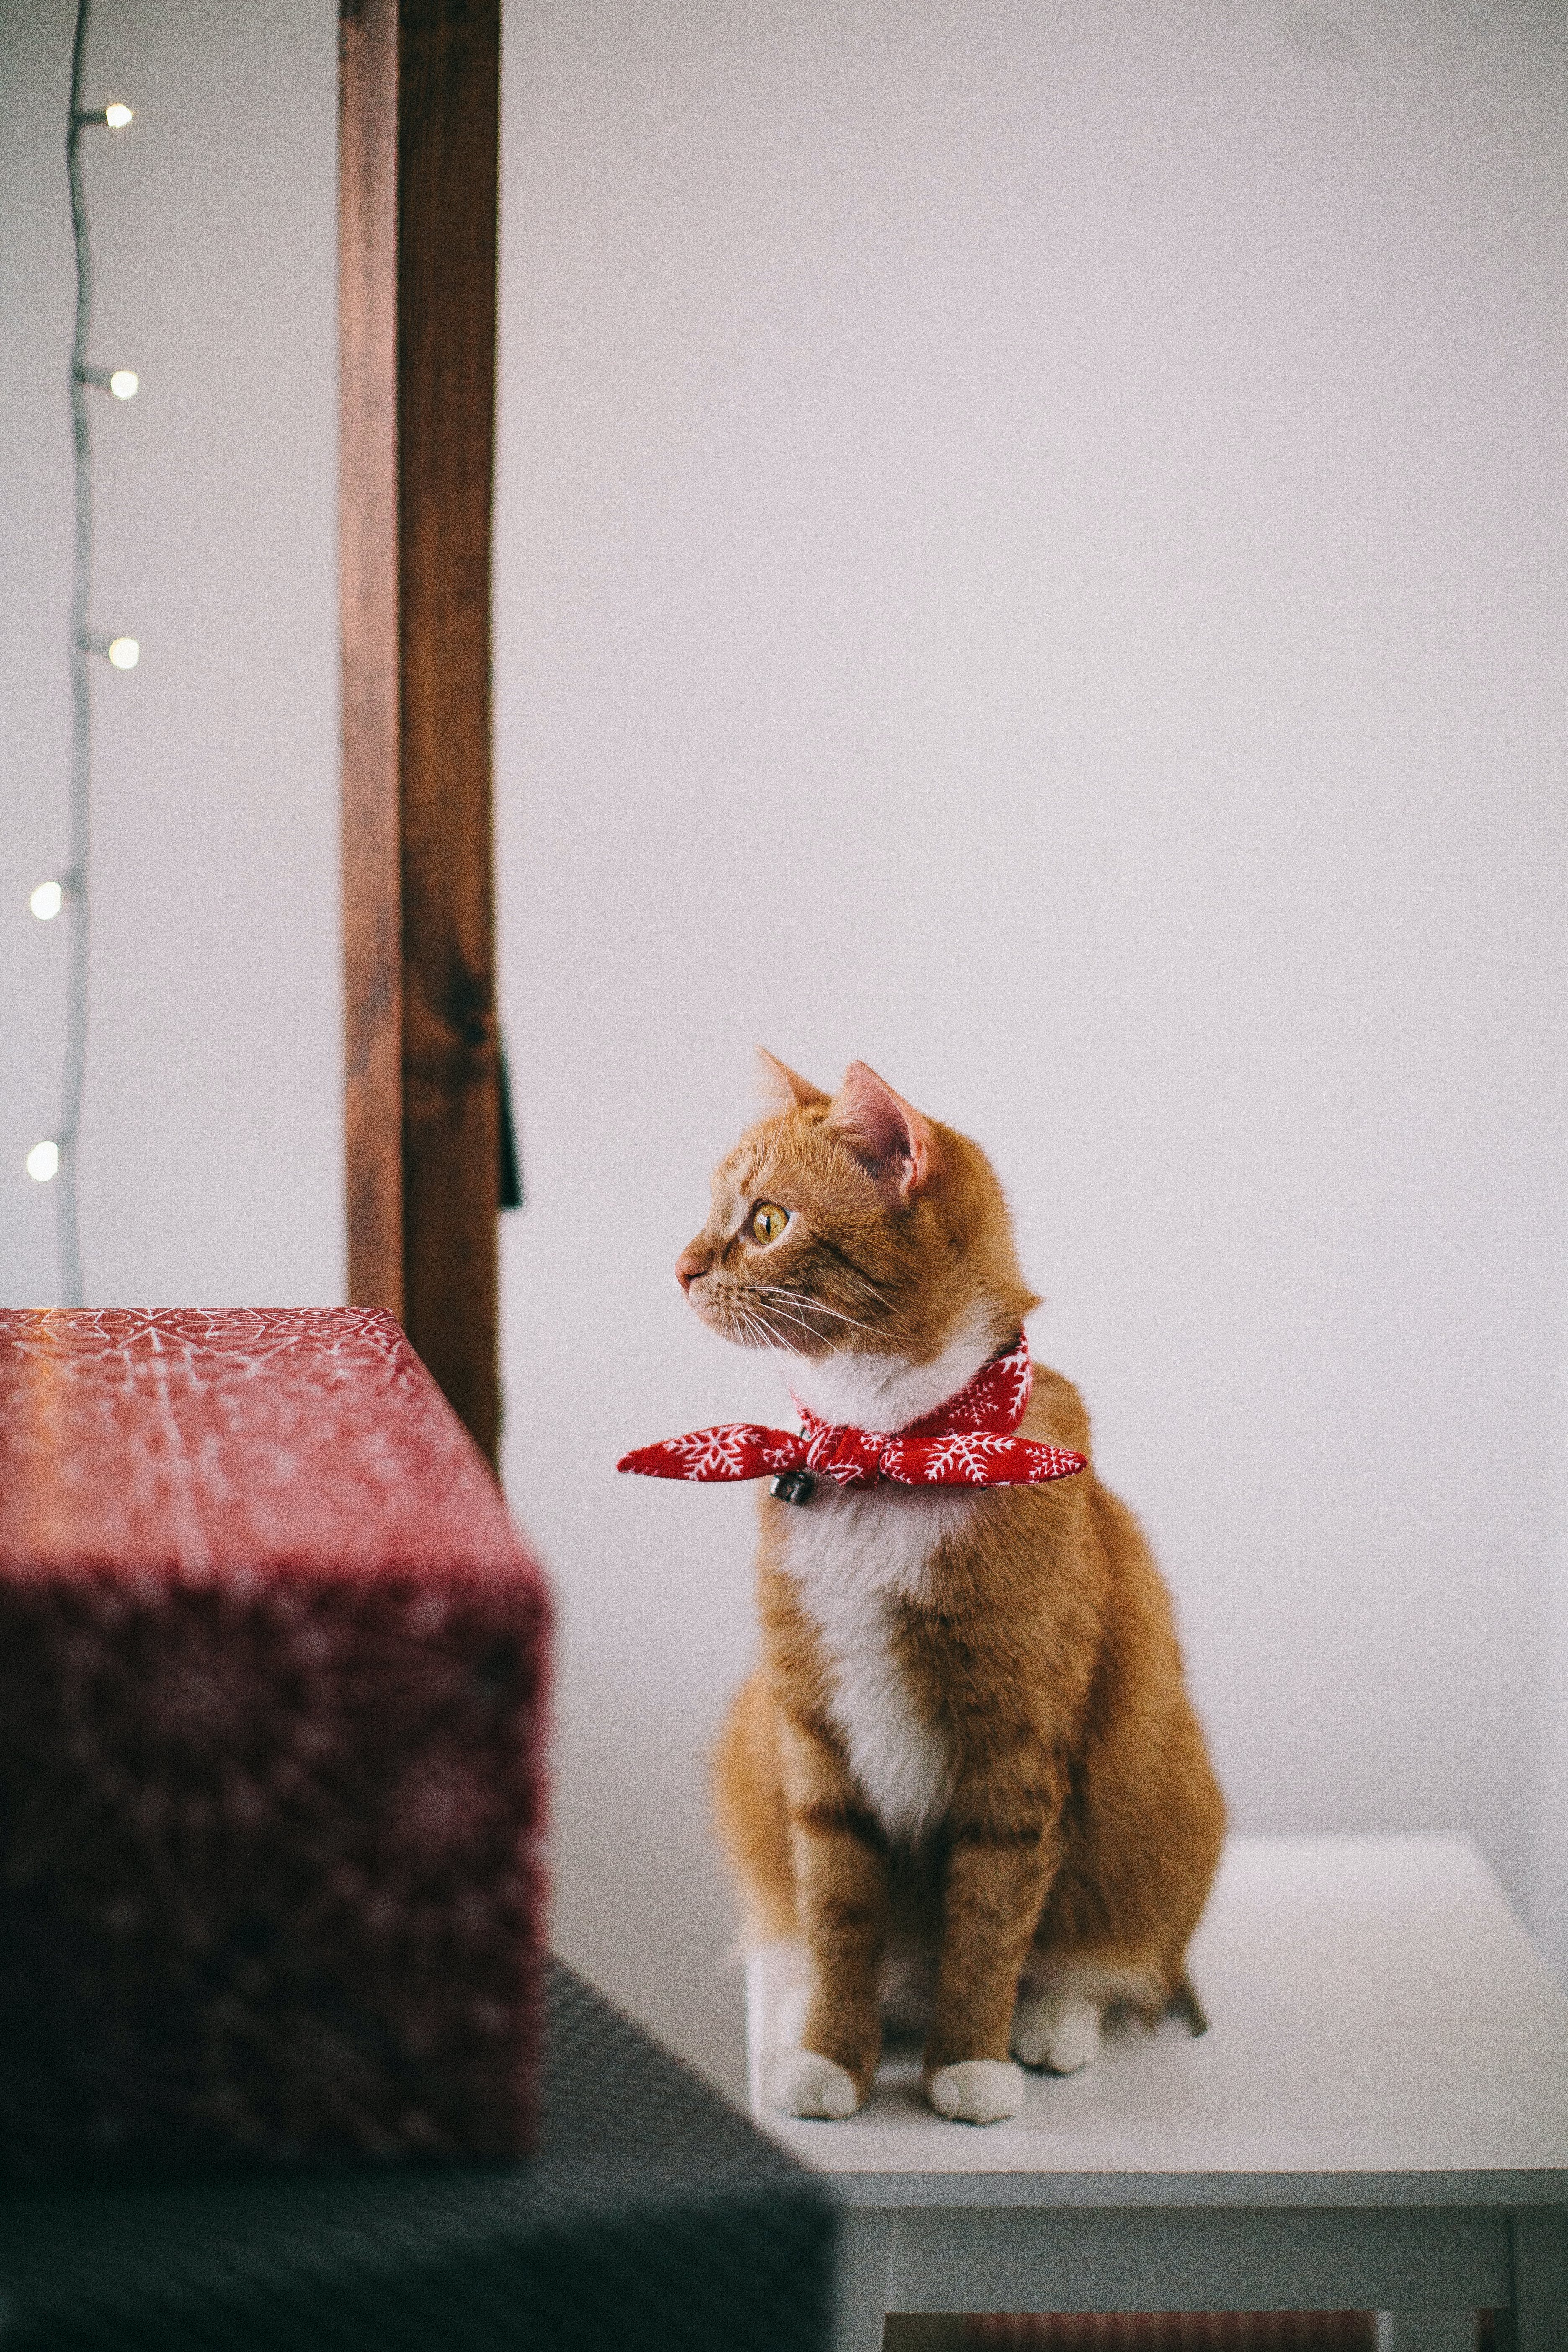 Orange and White Cat with Red Ribbon on Neck Sitting on White Wooden Stool Looking Away